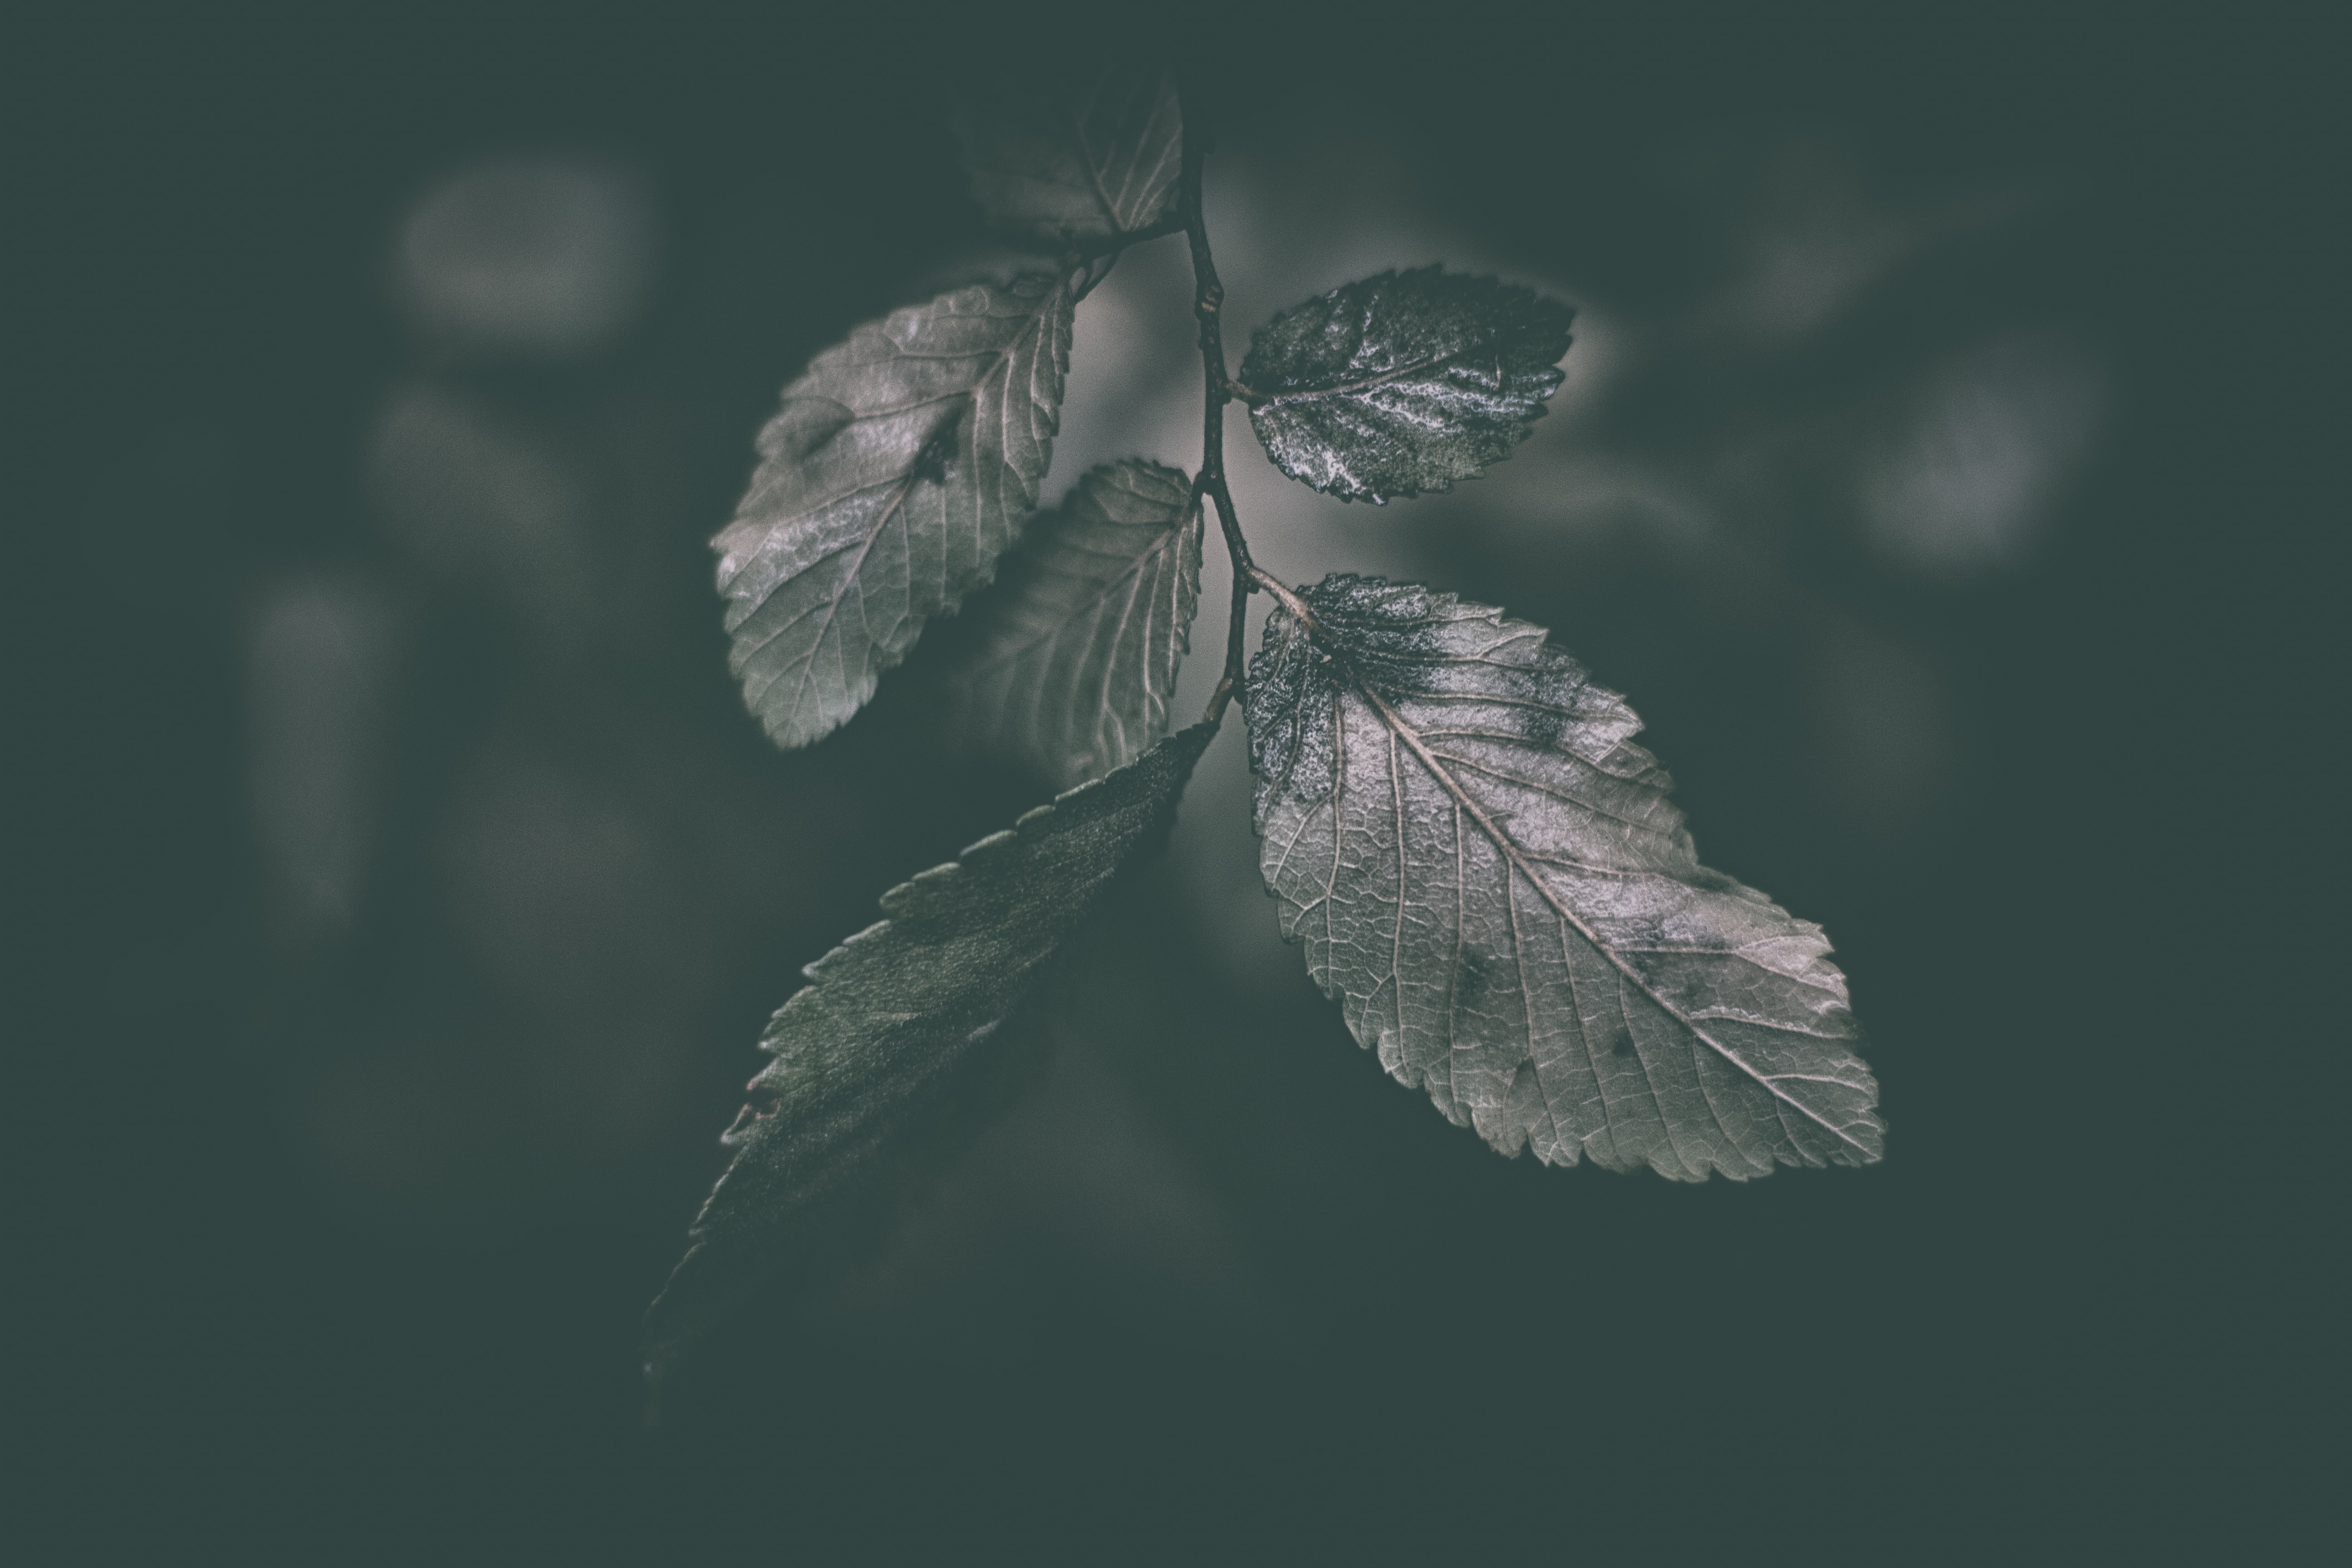 gray leafed plant